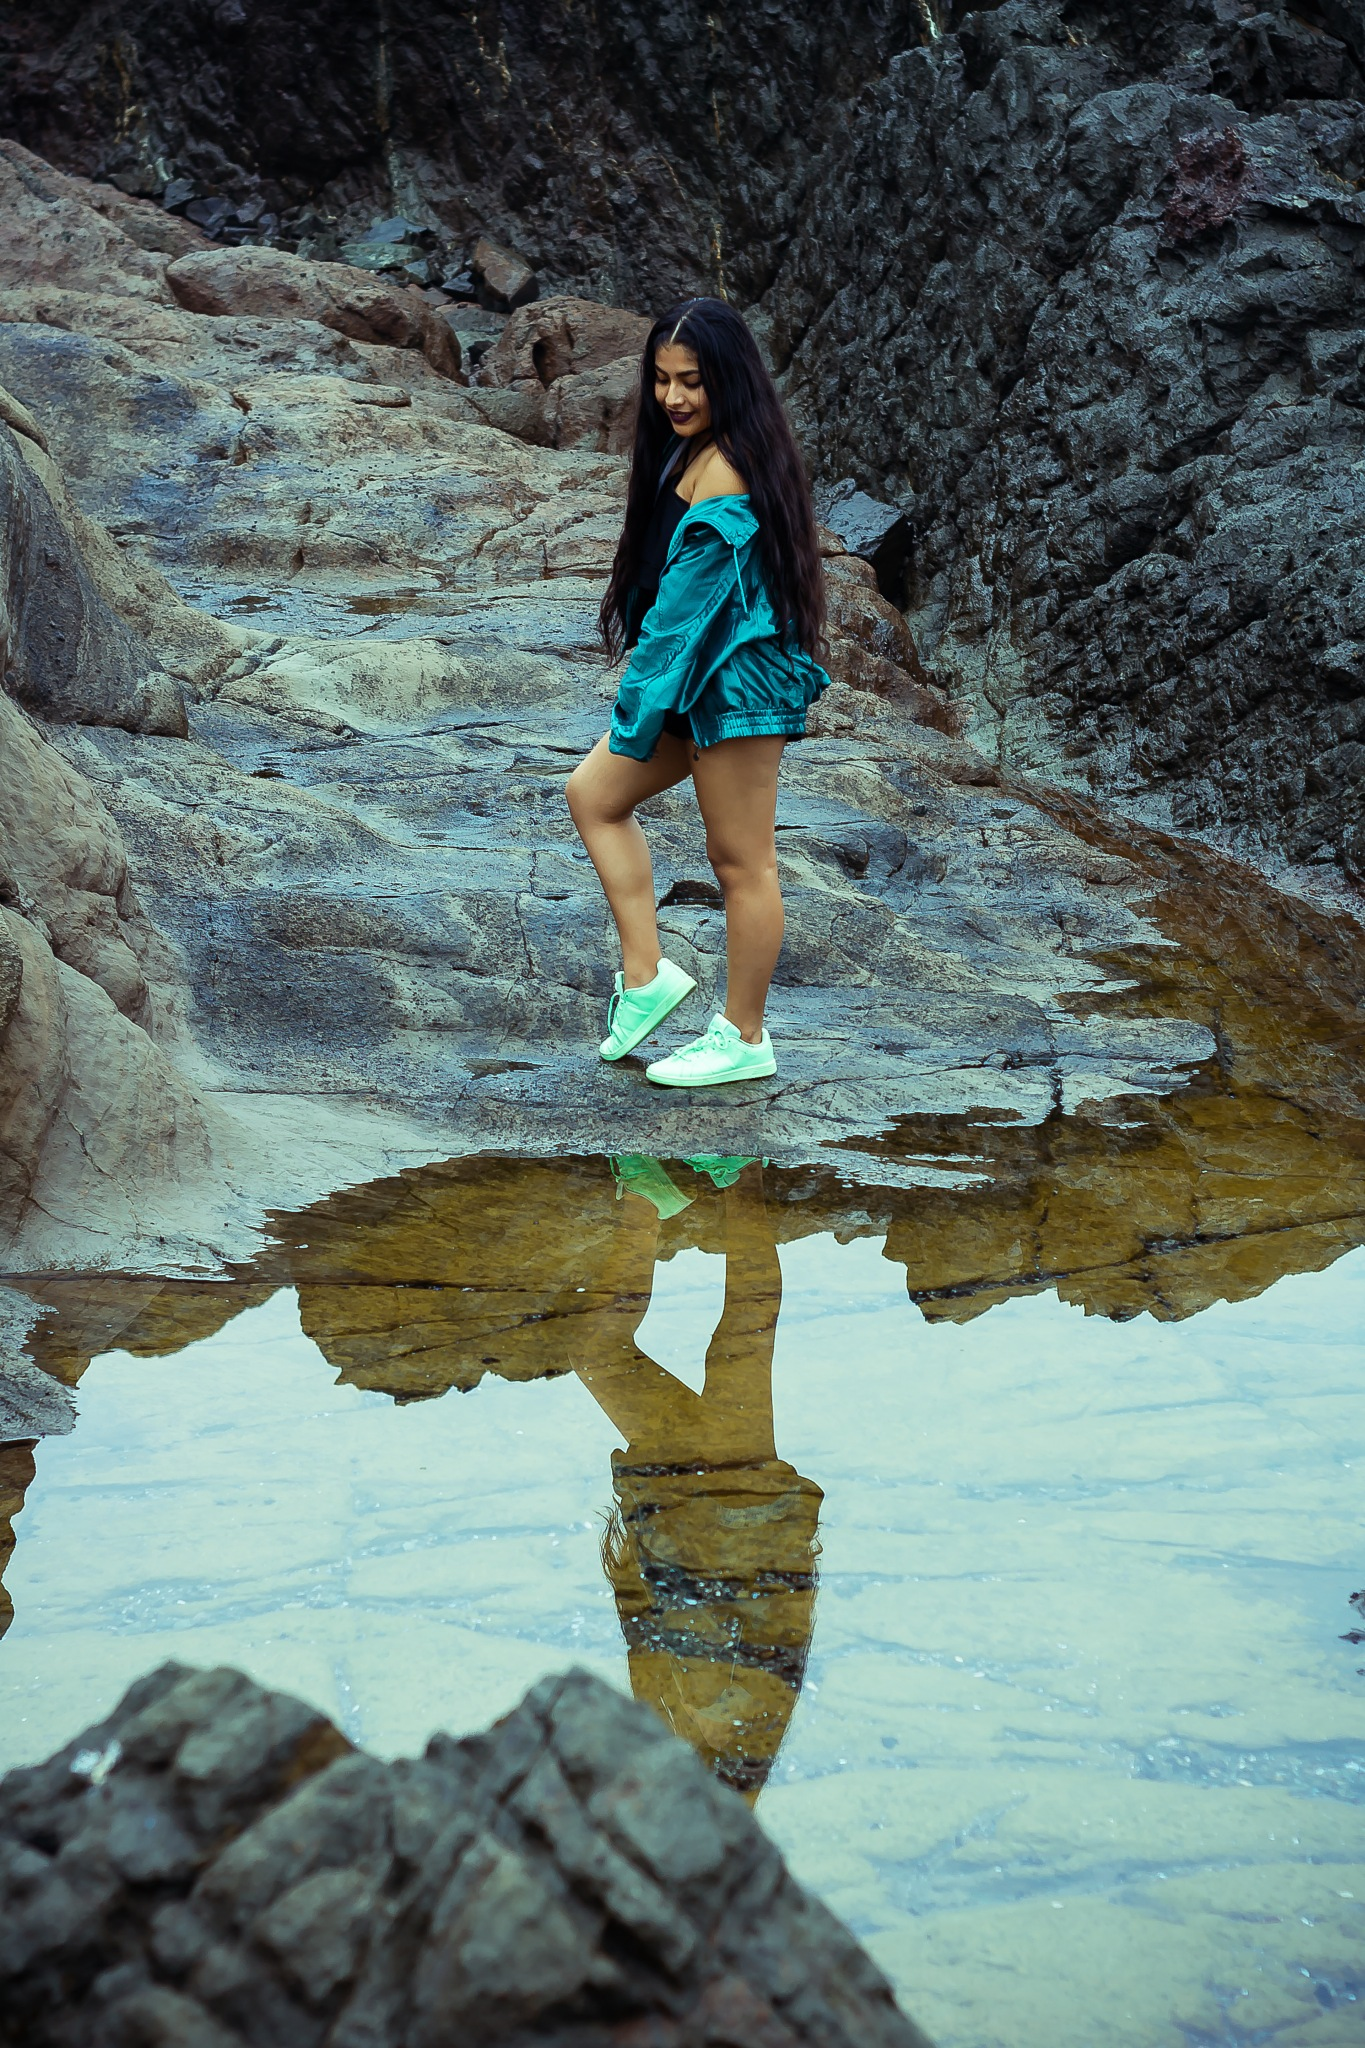 Reflection  by raykevini